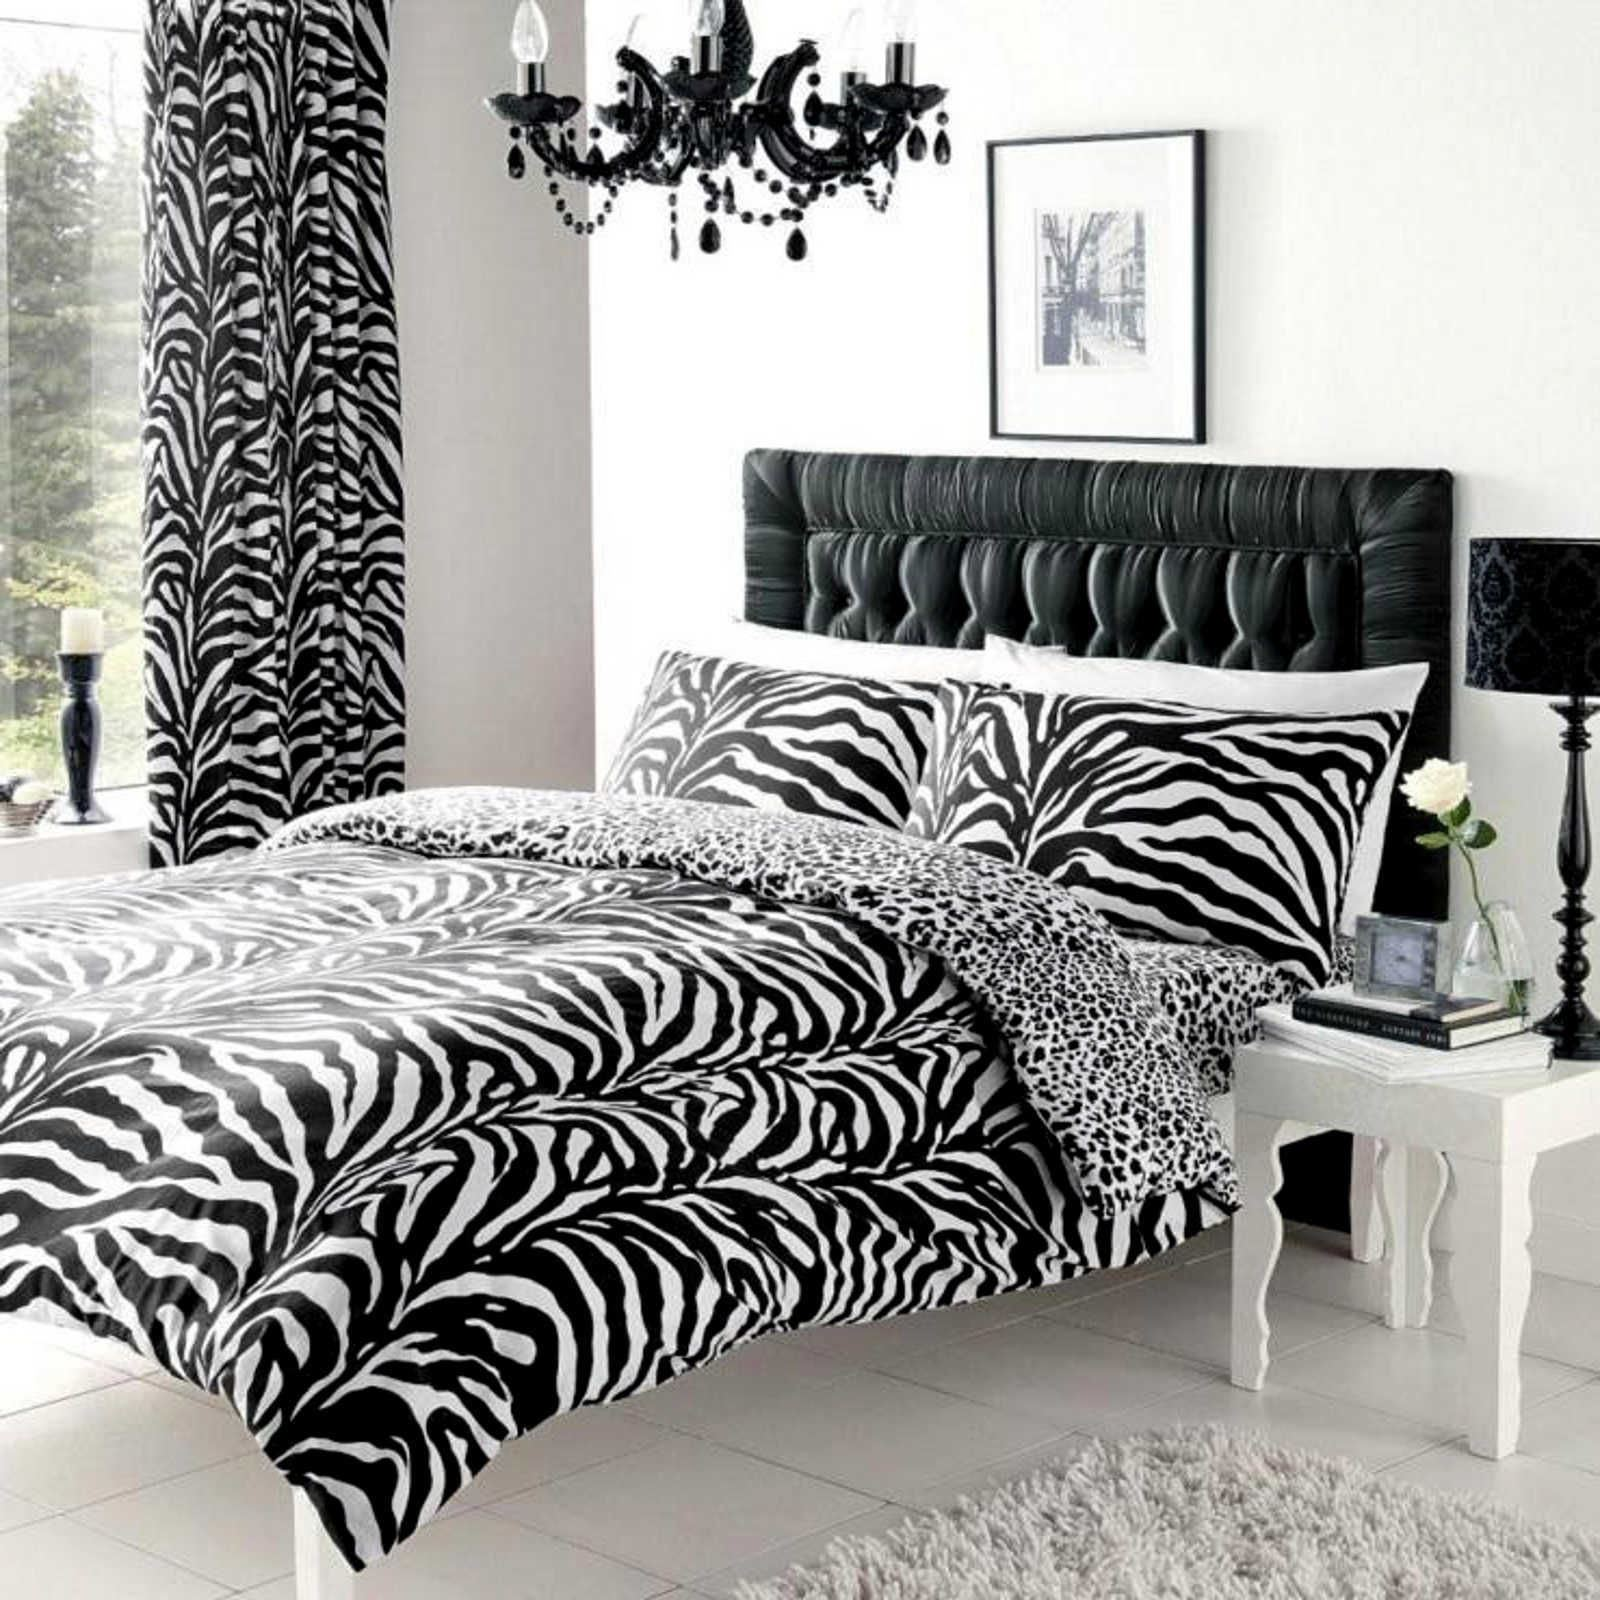 ZEBRA PRINT REVERSIBLE LEOPARD PRINT DUVET COVER AND PILLOWCASE SETS BEDDING